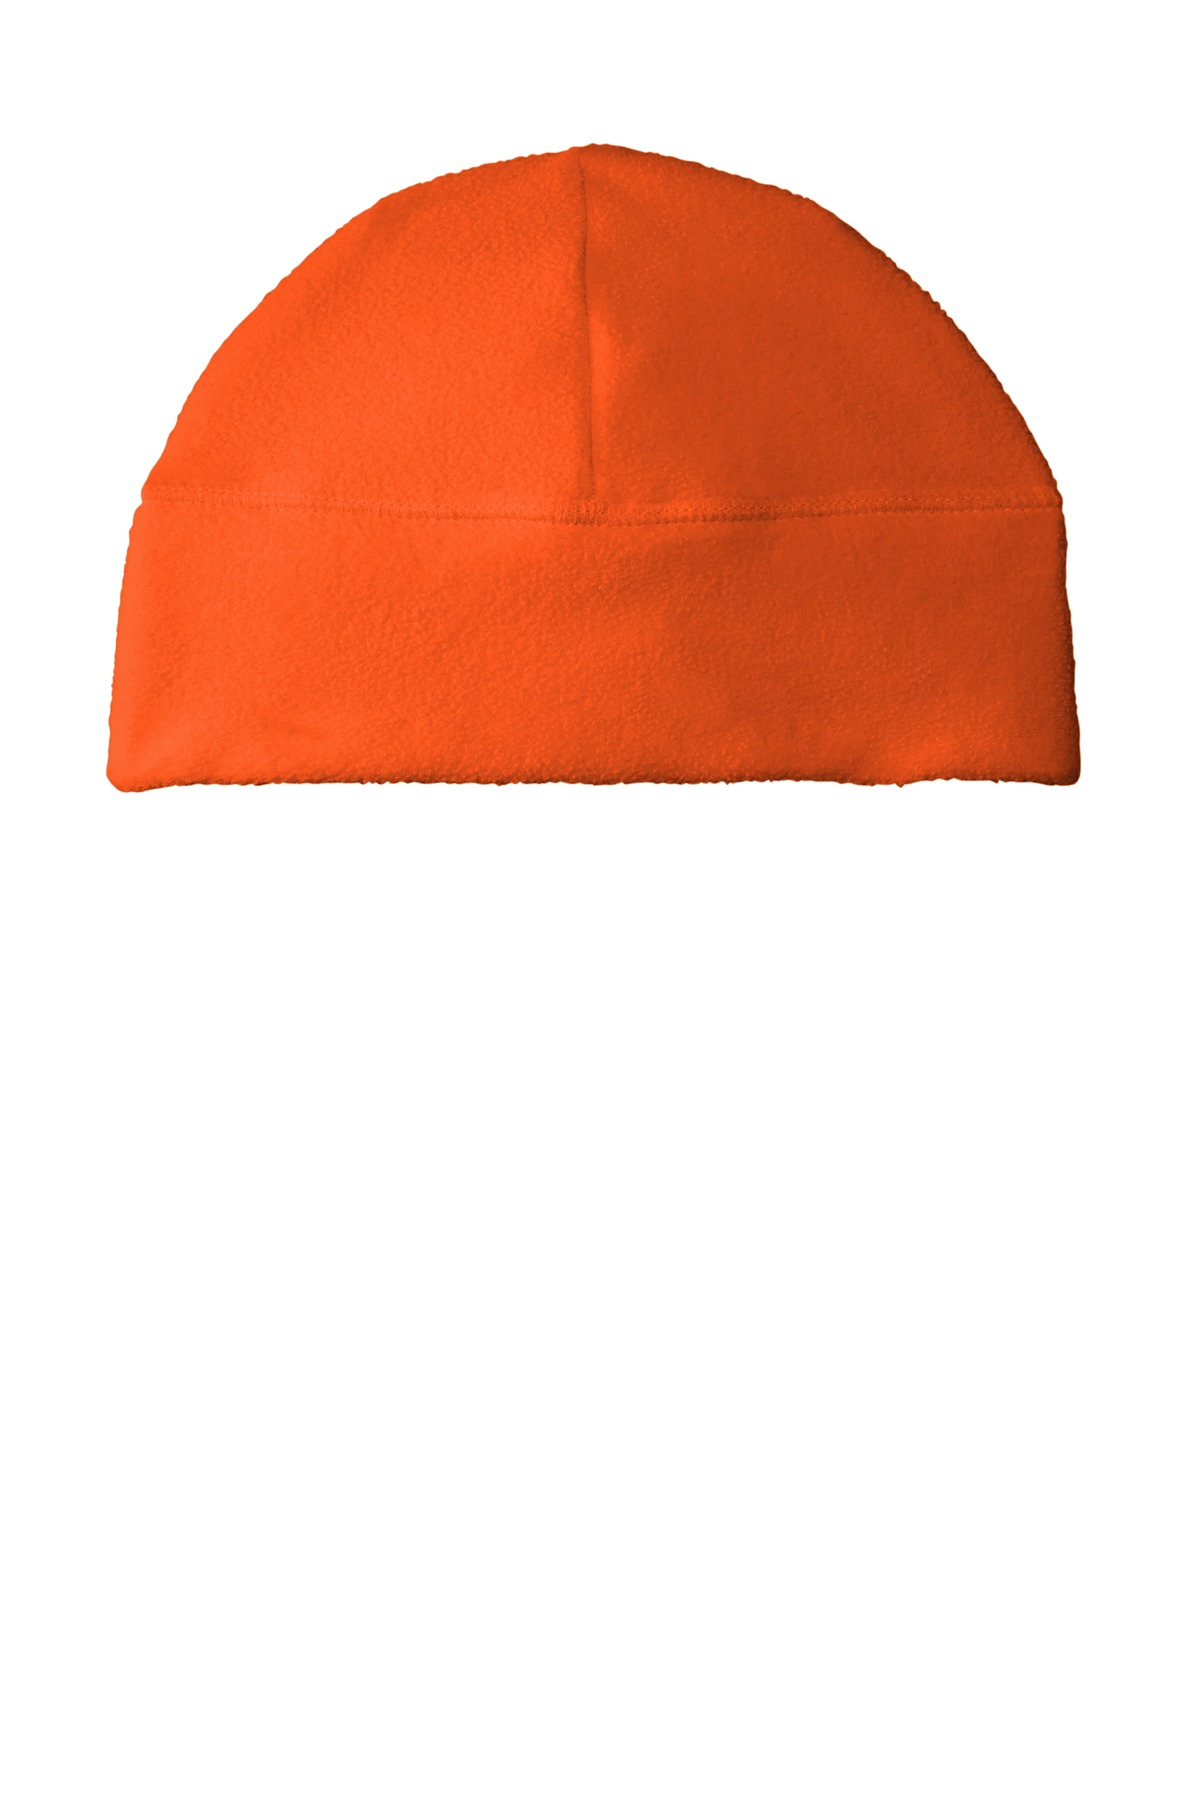 CornerStone  ®  Enhanced Visibility Fleece Beanie CS803 - Safety Orange